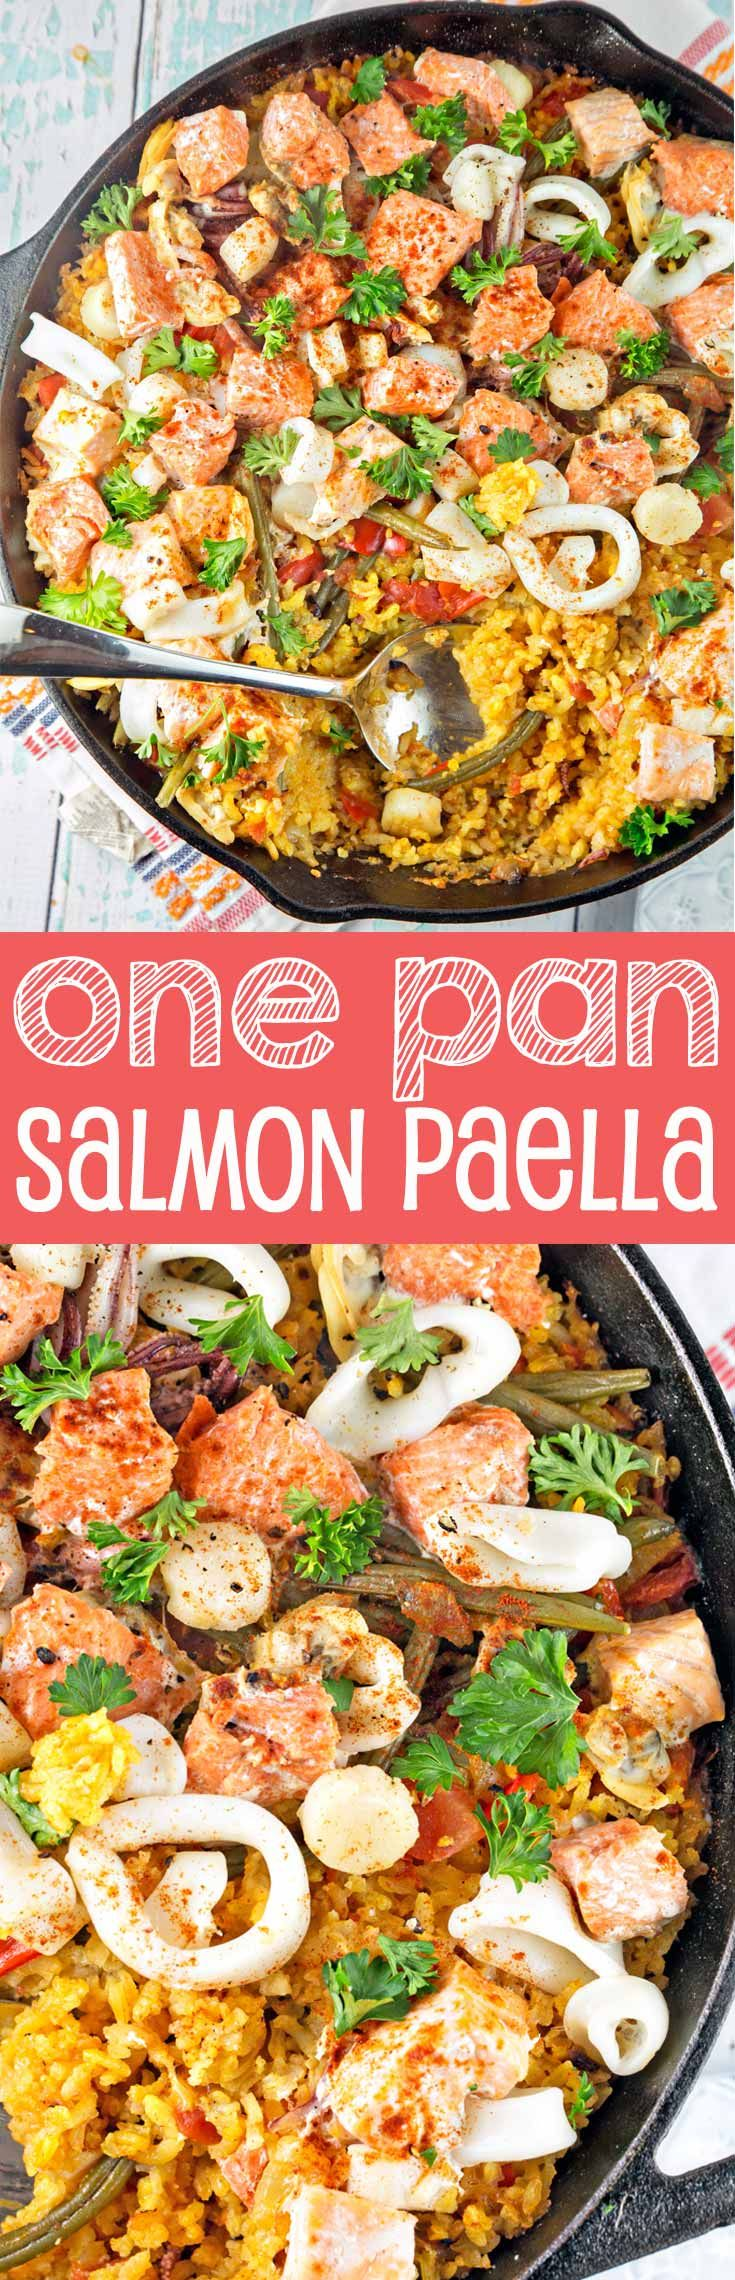 One Pan Salmon Paella:  Made with easy-to-find ingredients, this is a delicious, heart-healthy dinner choice. {Bunsen Burner Bakery} #HuntsHasHeart #ad @walmart @huntschef (Spicy Bake Salmon)